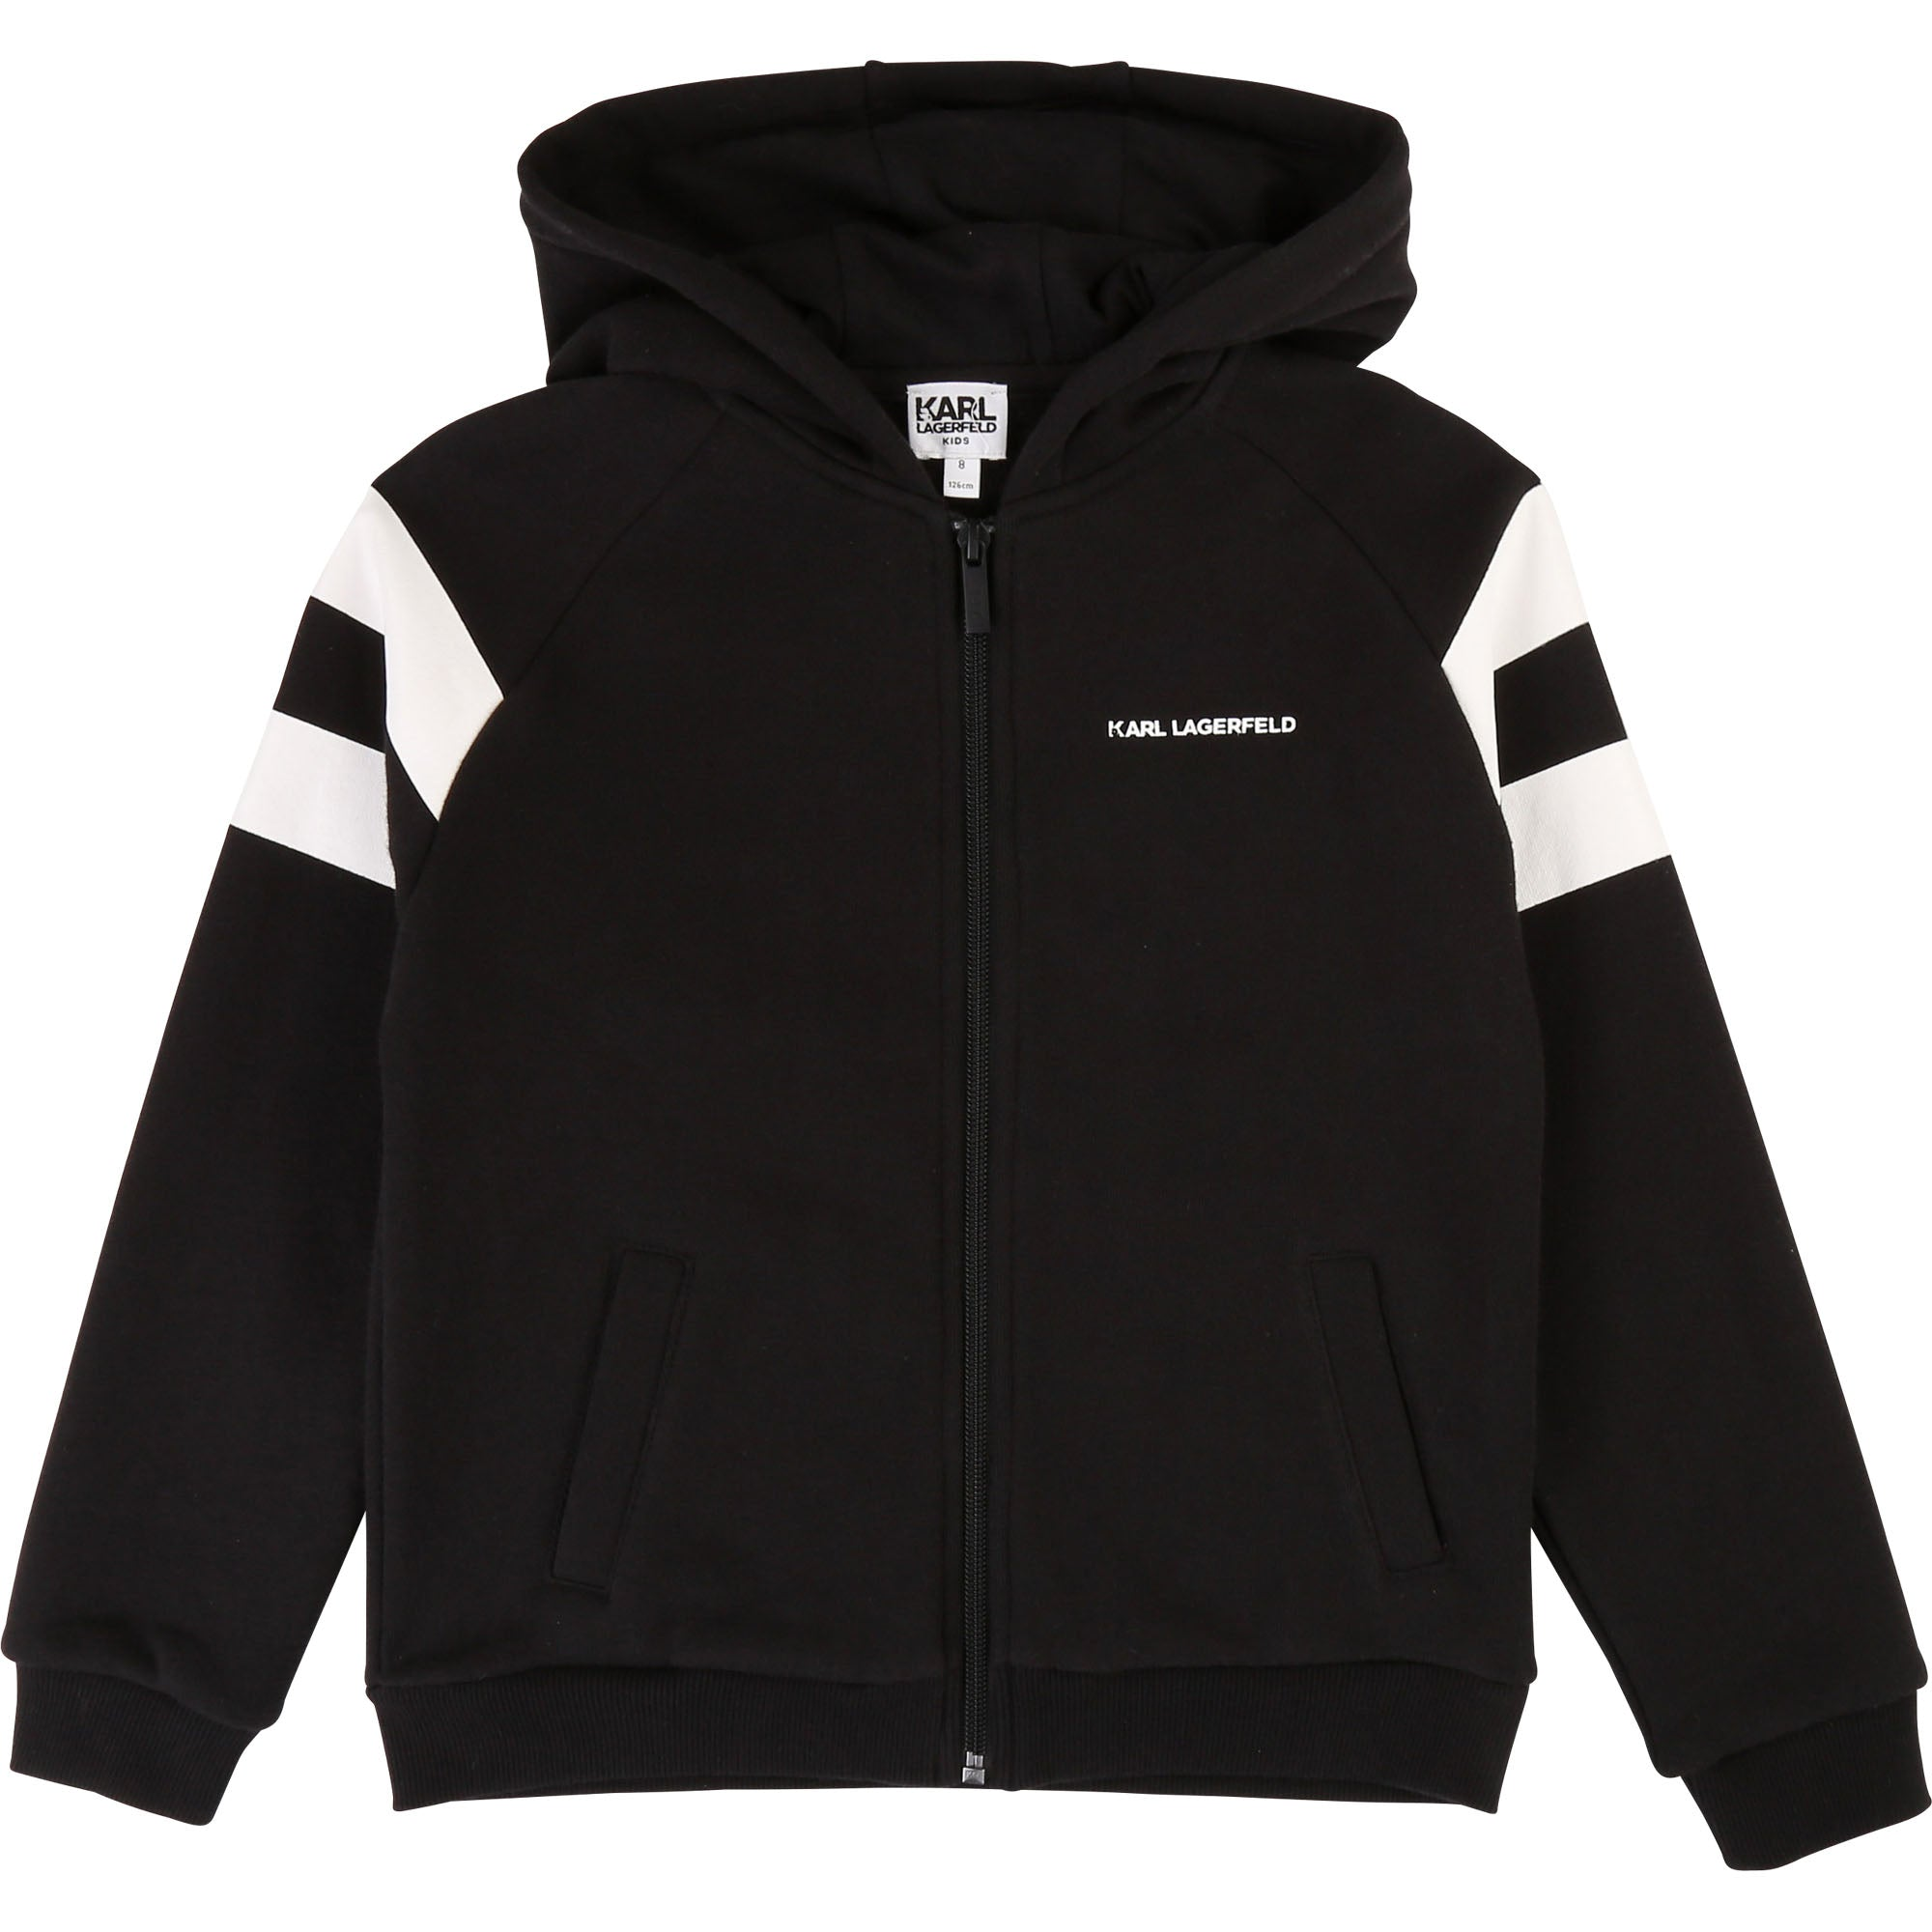 Boys Black Jersey Hooded Top